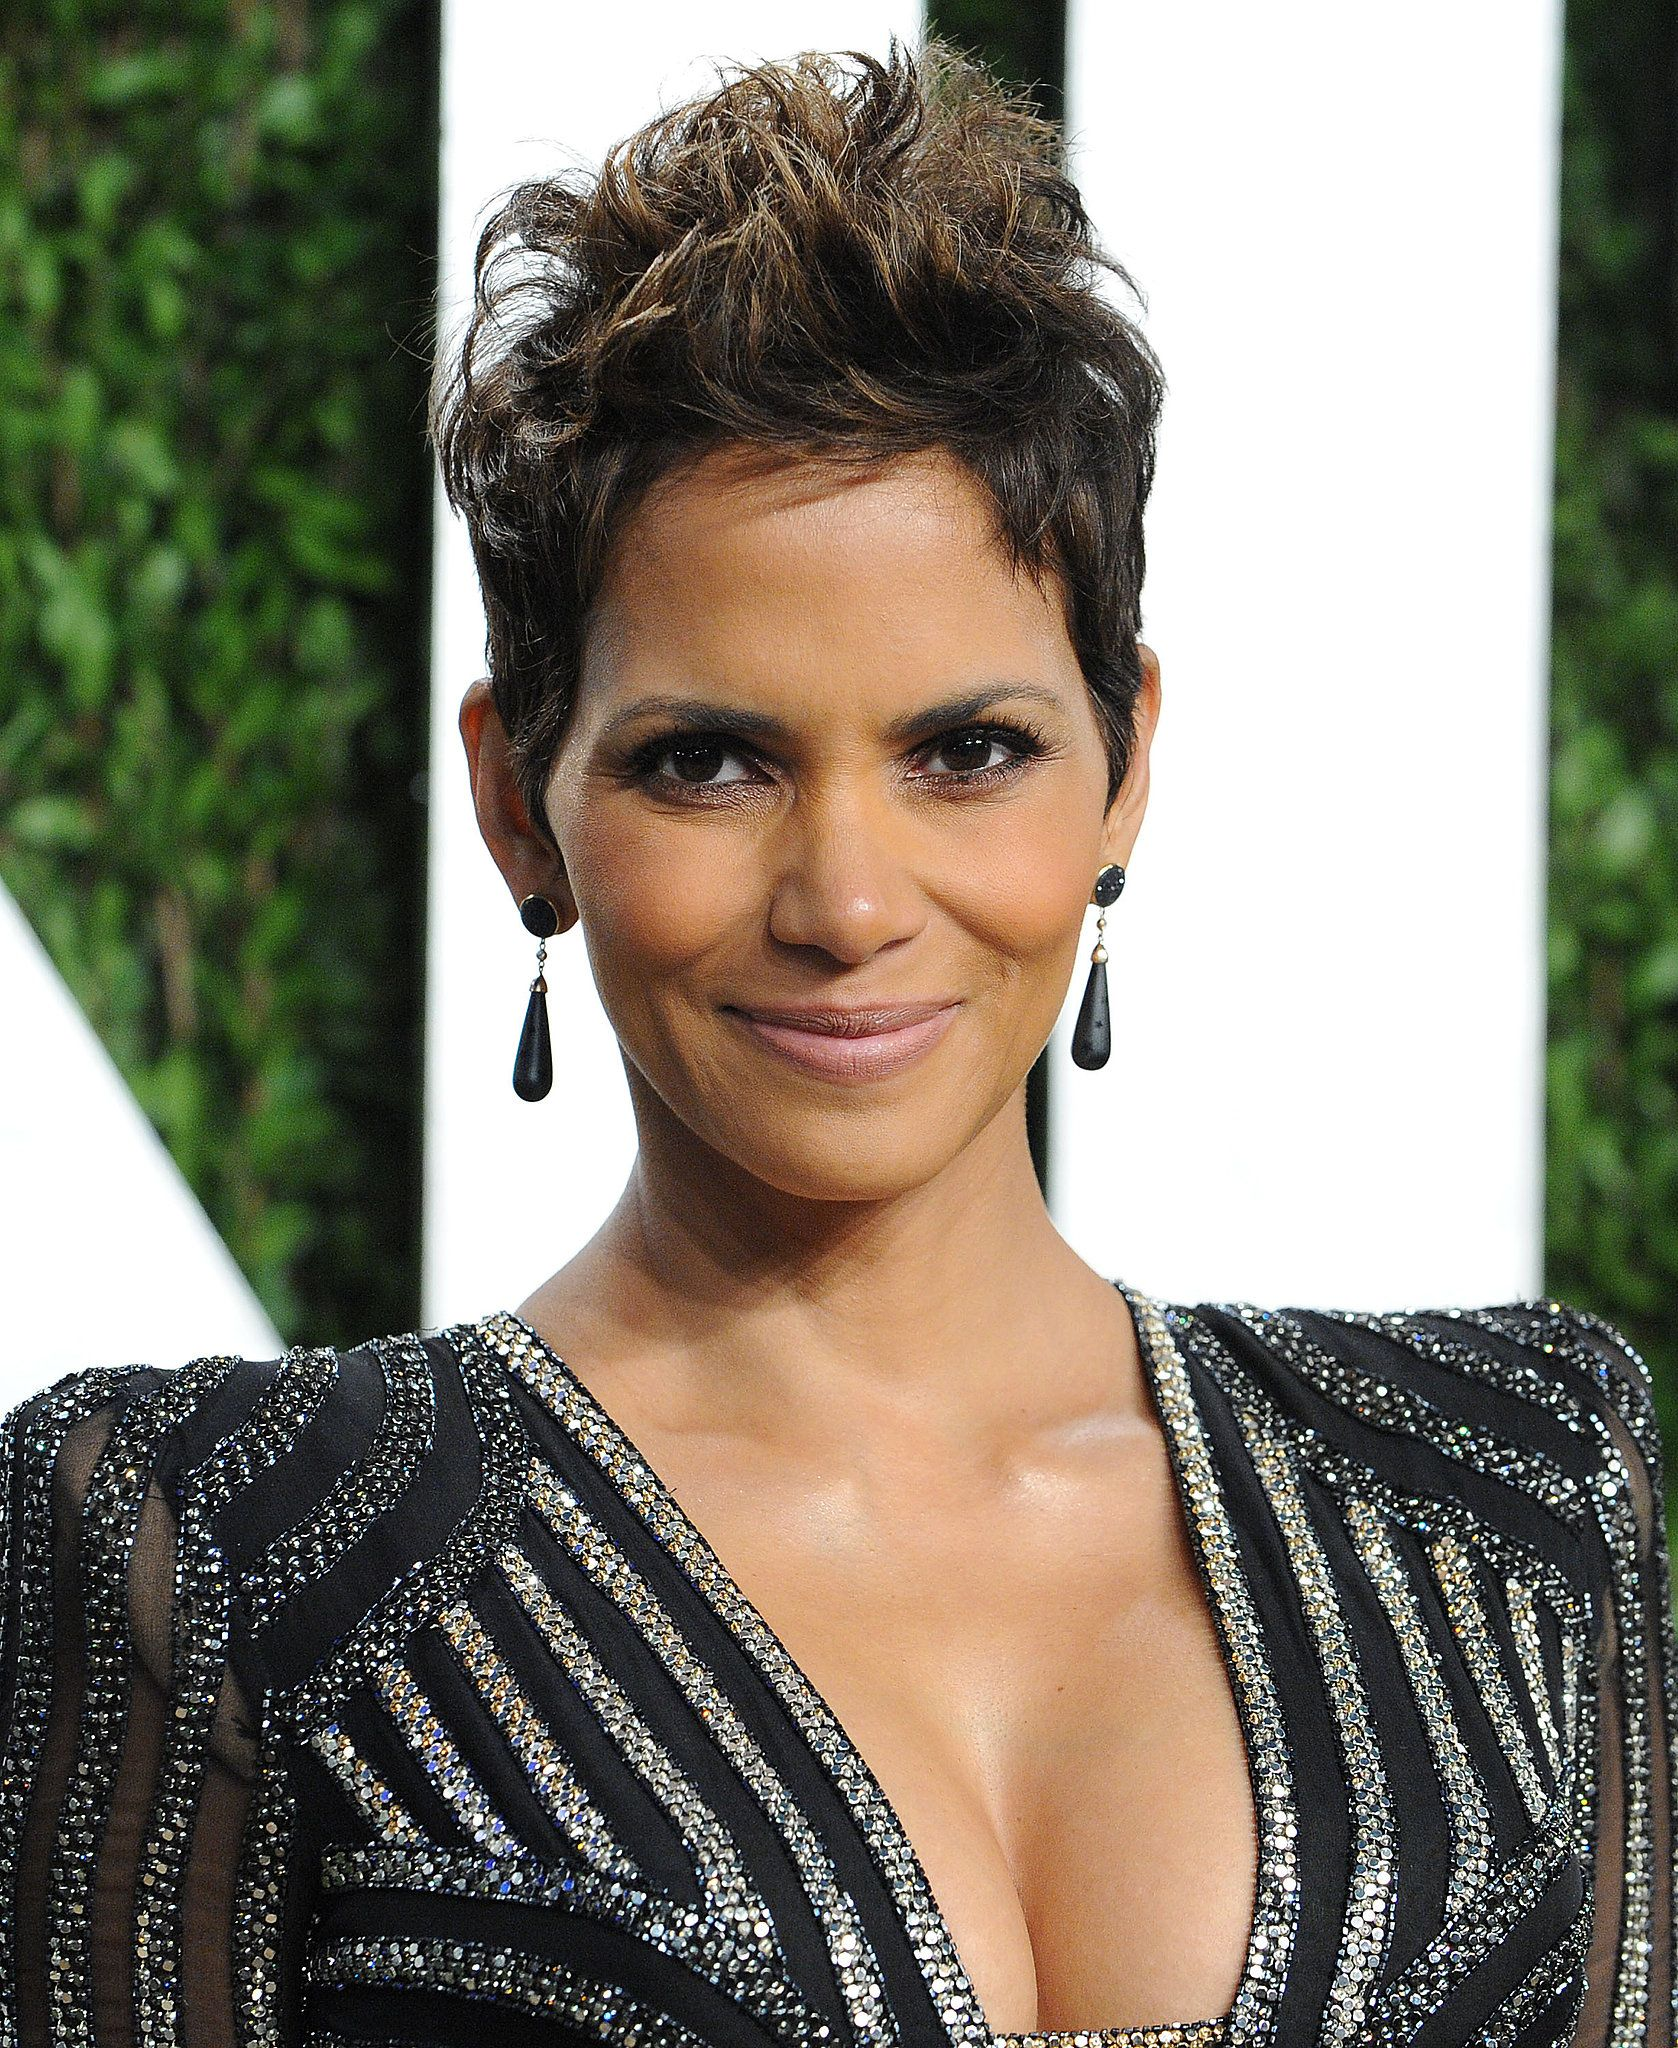 Halle berryus iconic coiffure never seems to go out of style hair